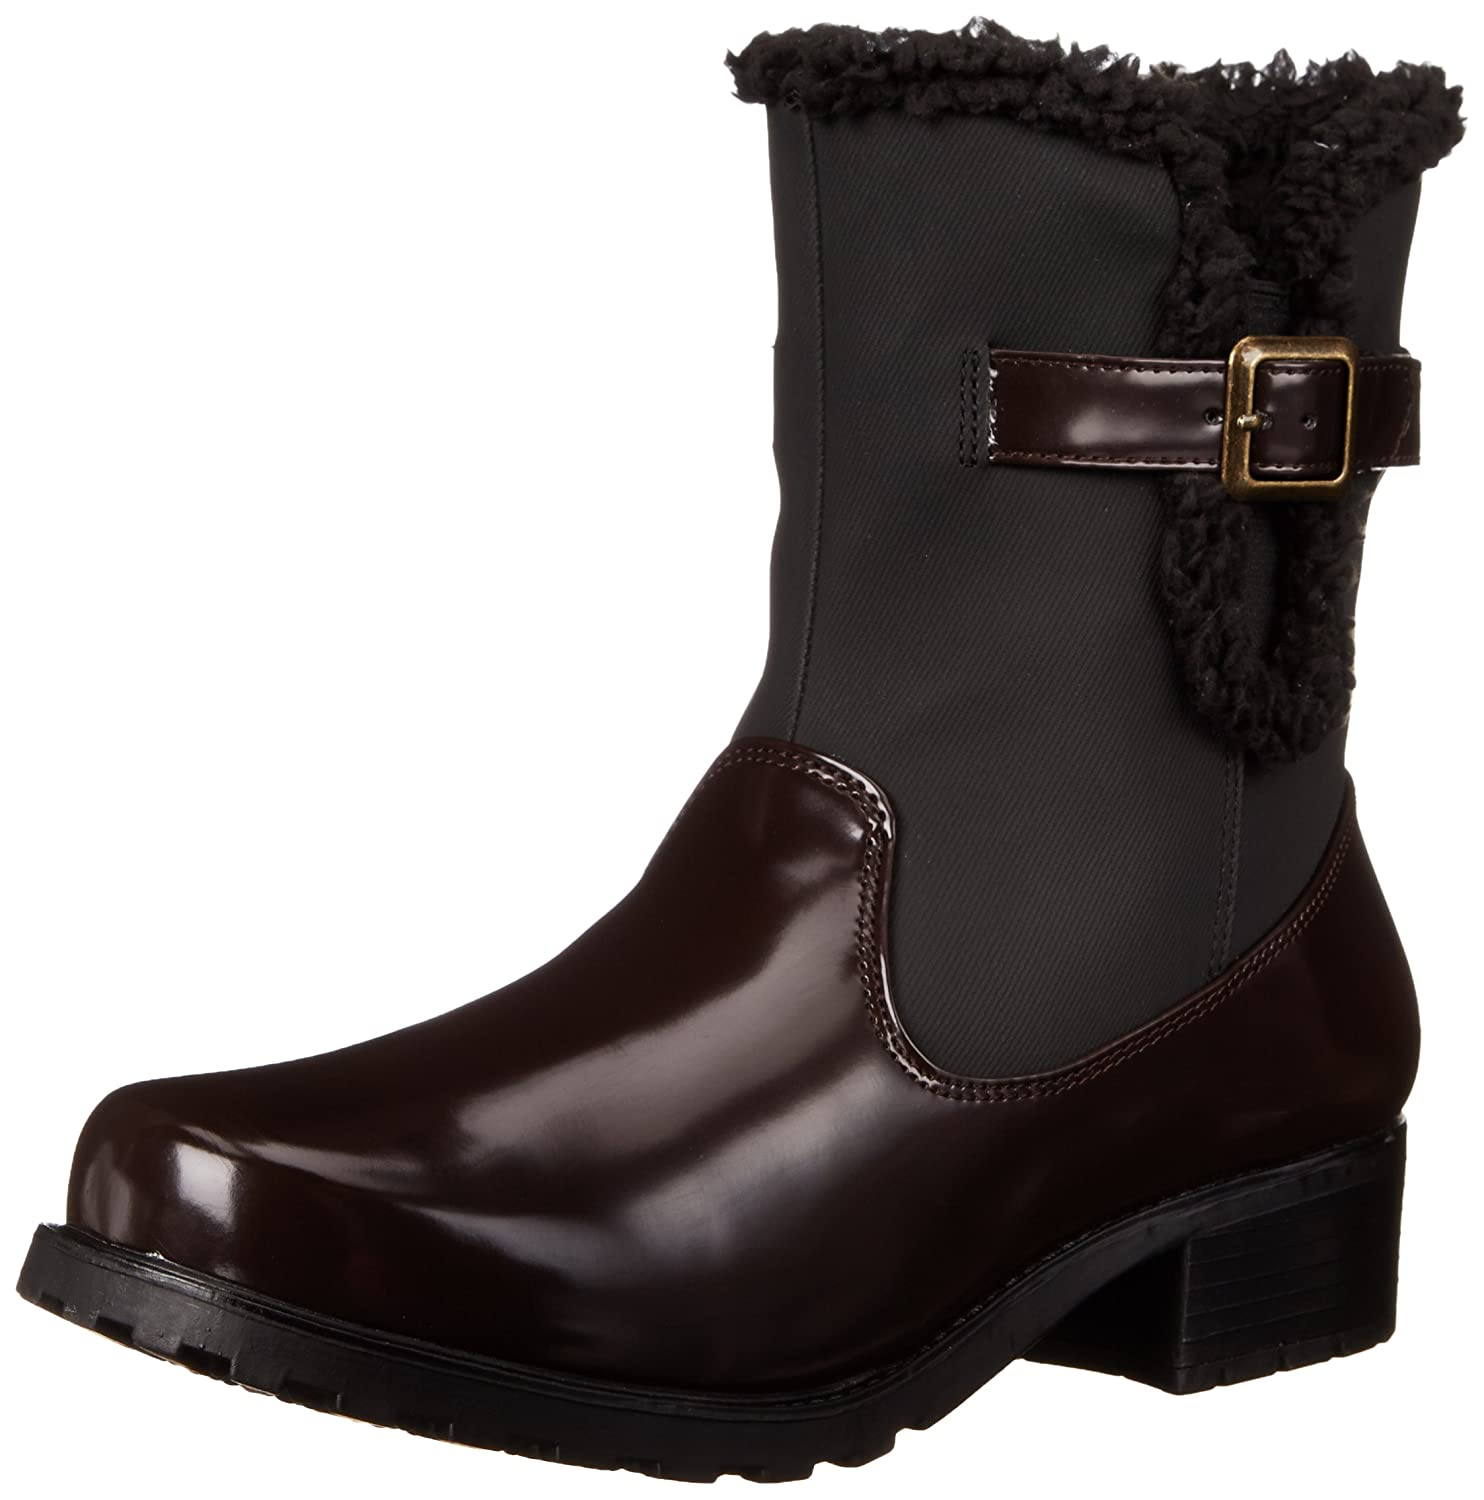 Trotters Women's Blast III Boot B00RZPF2P6 7.5 N US|Bordeaux/Black